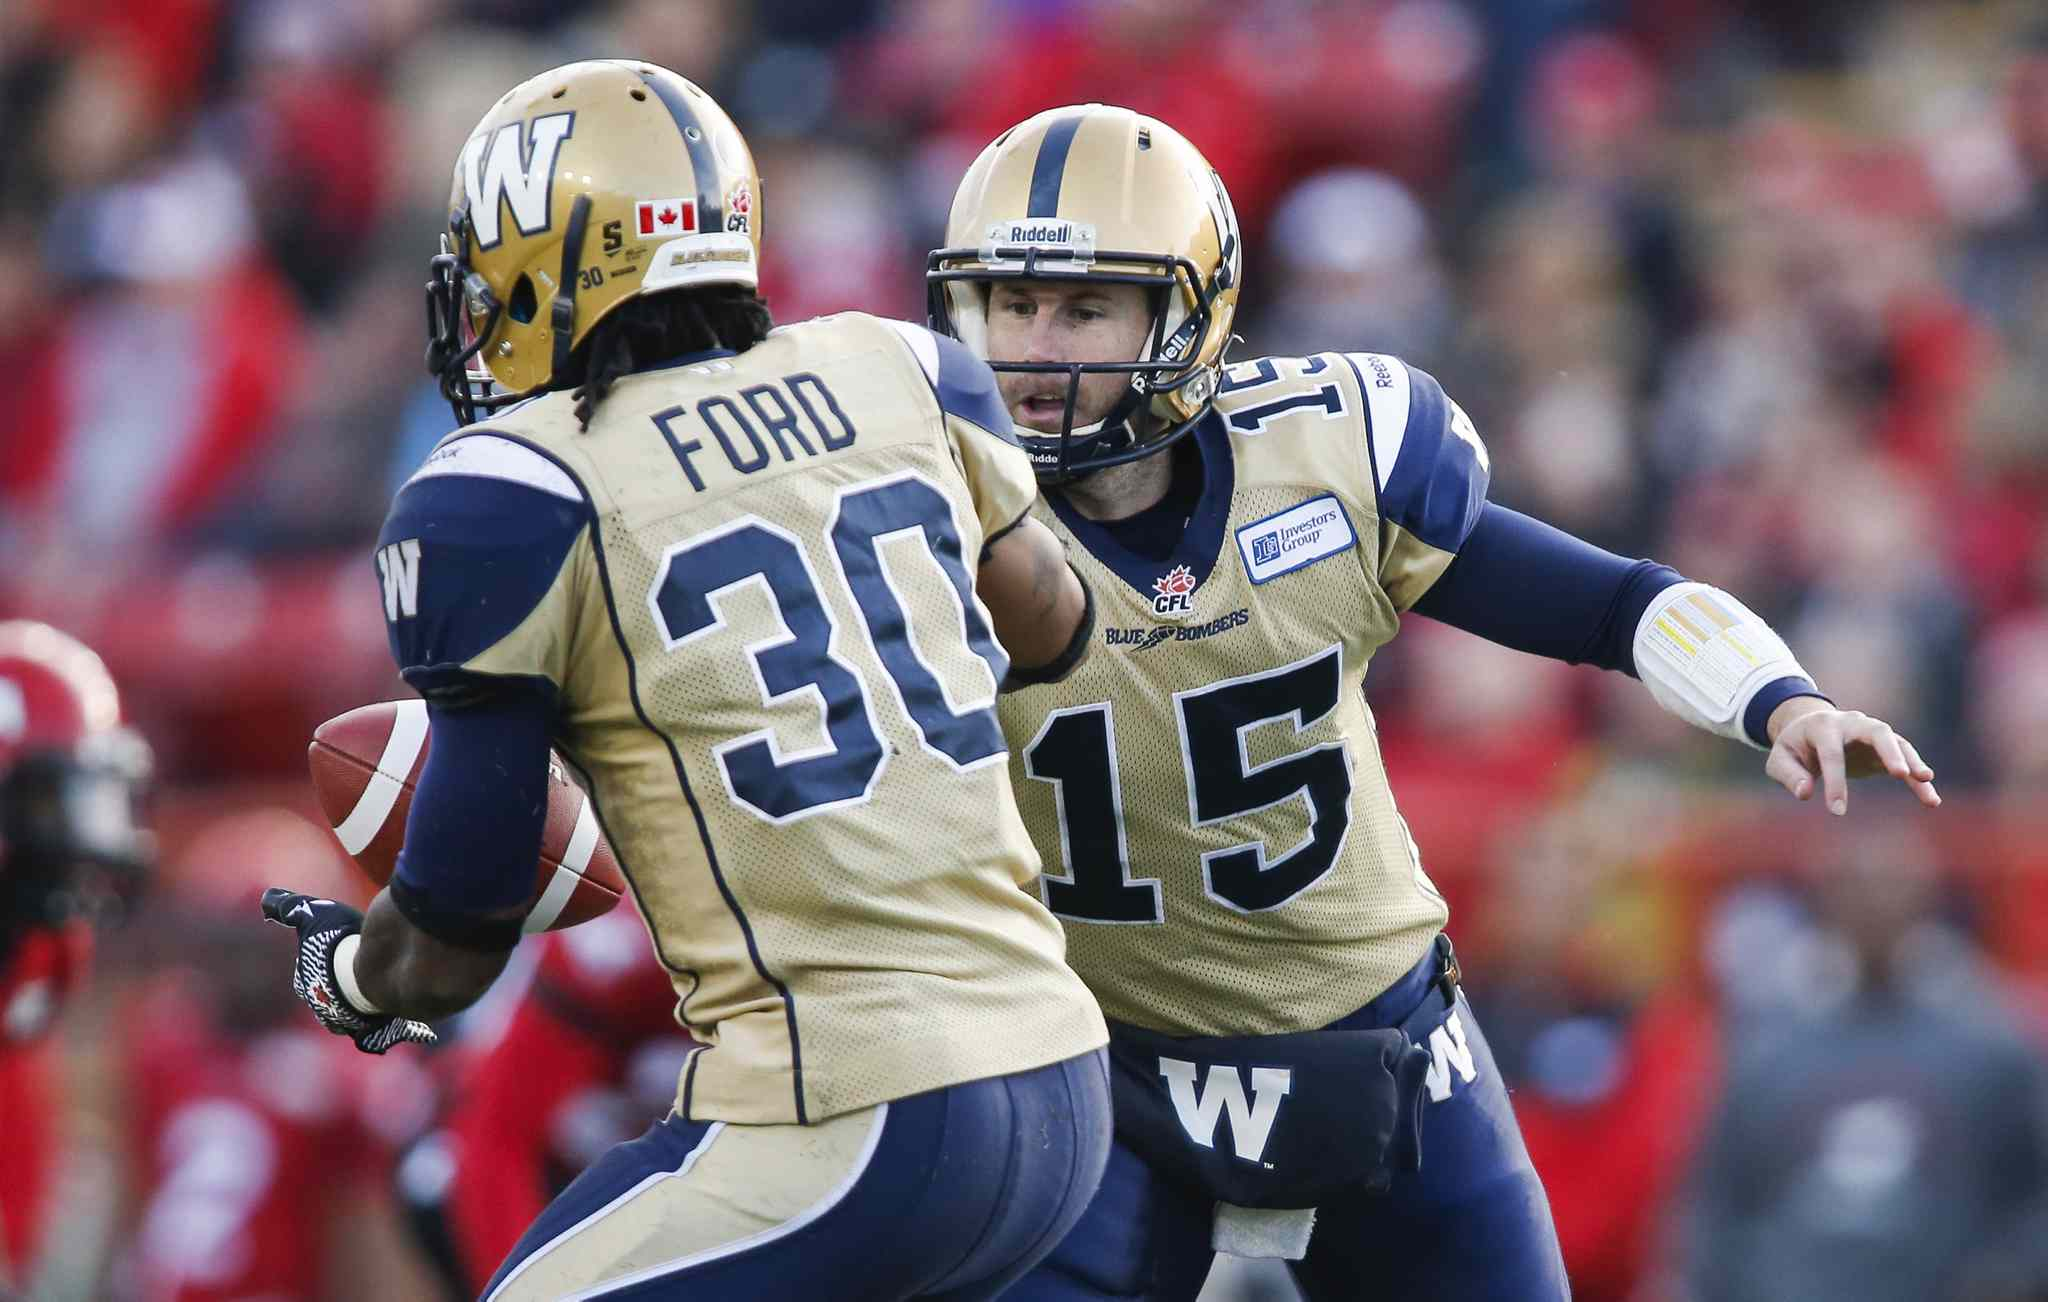 Winnipeg Blue Bombers quarterback Max Hall hands off the ball to teammate Will Ford during the first half.